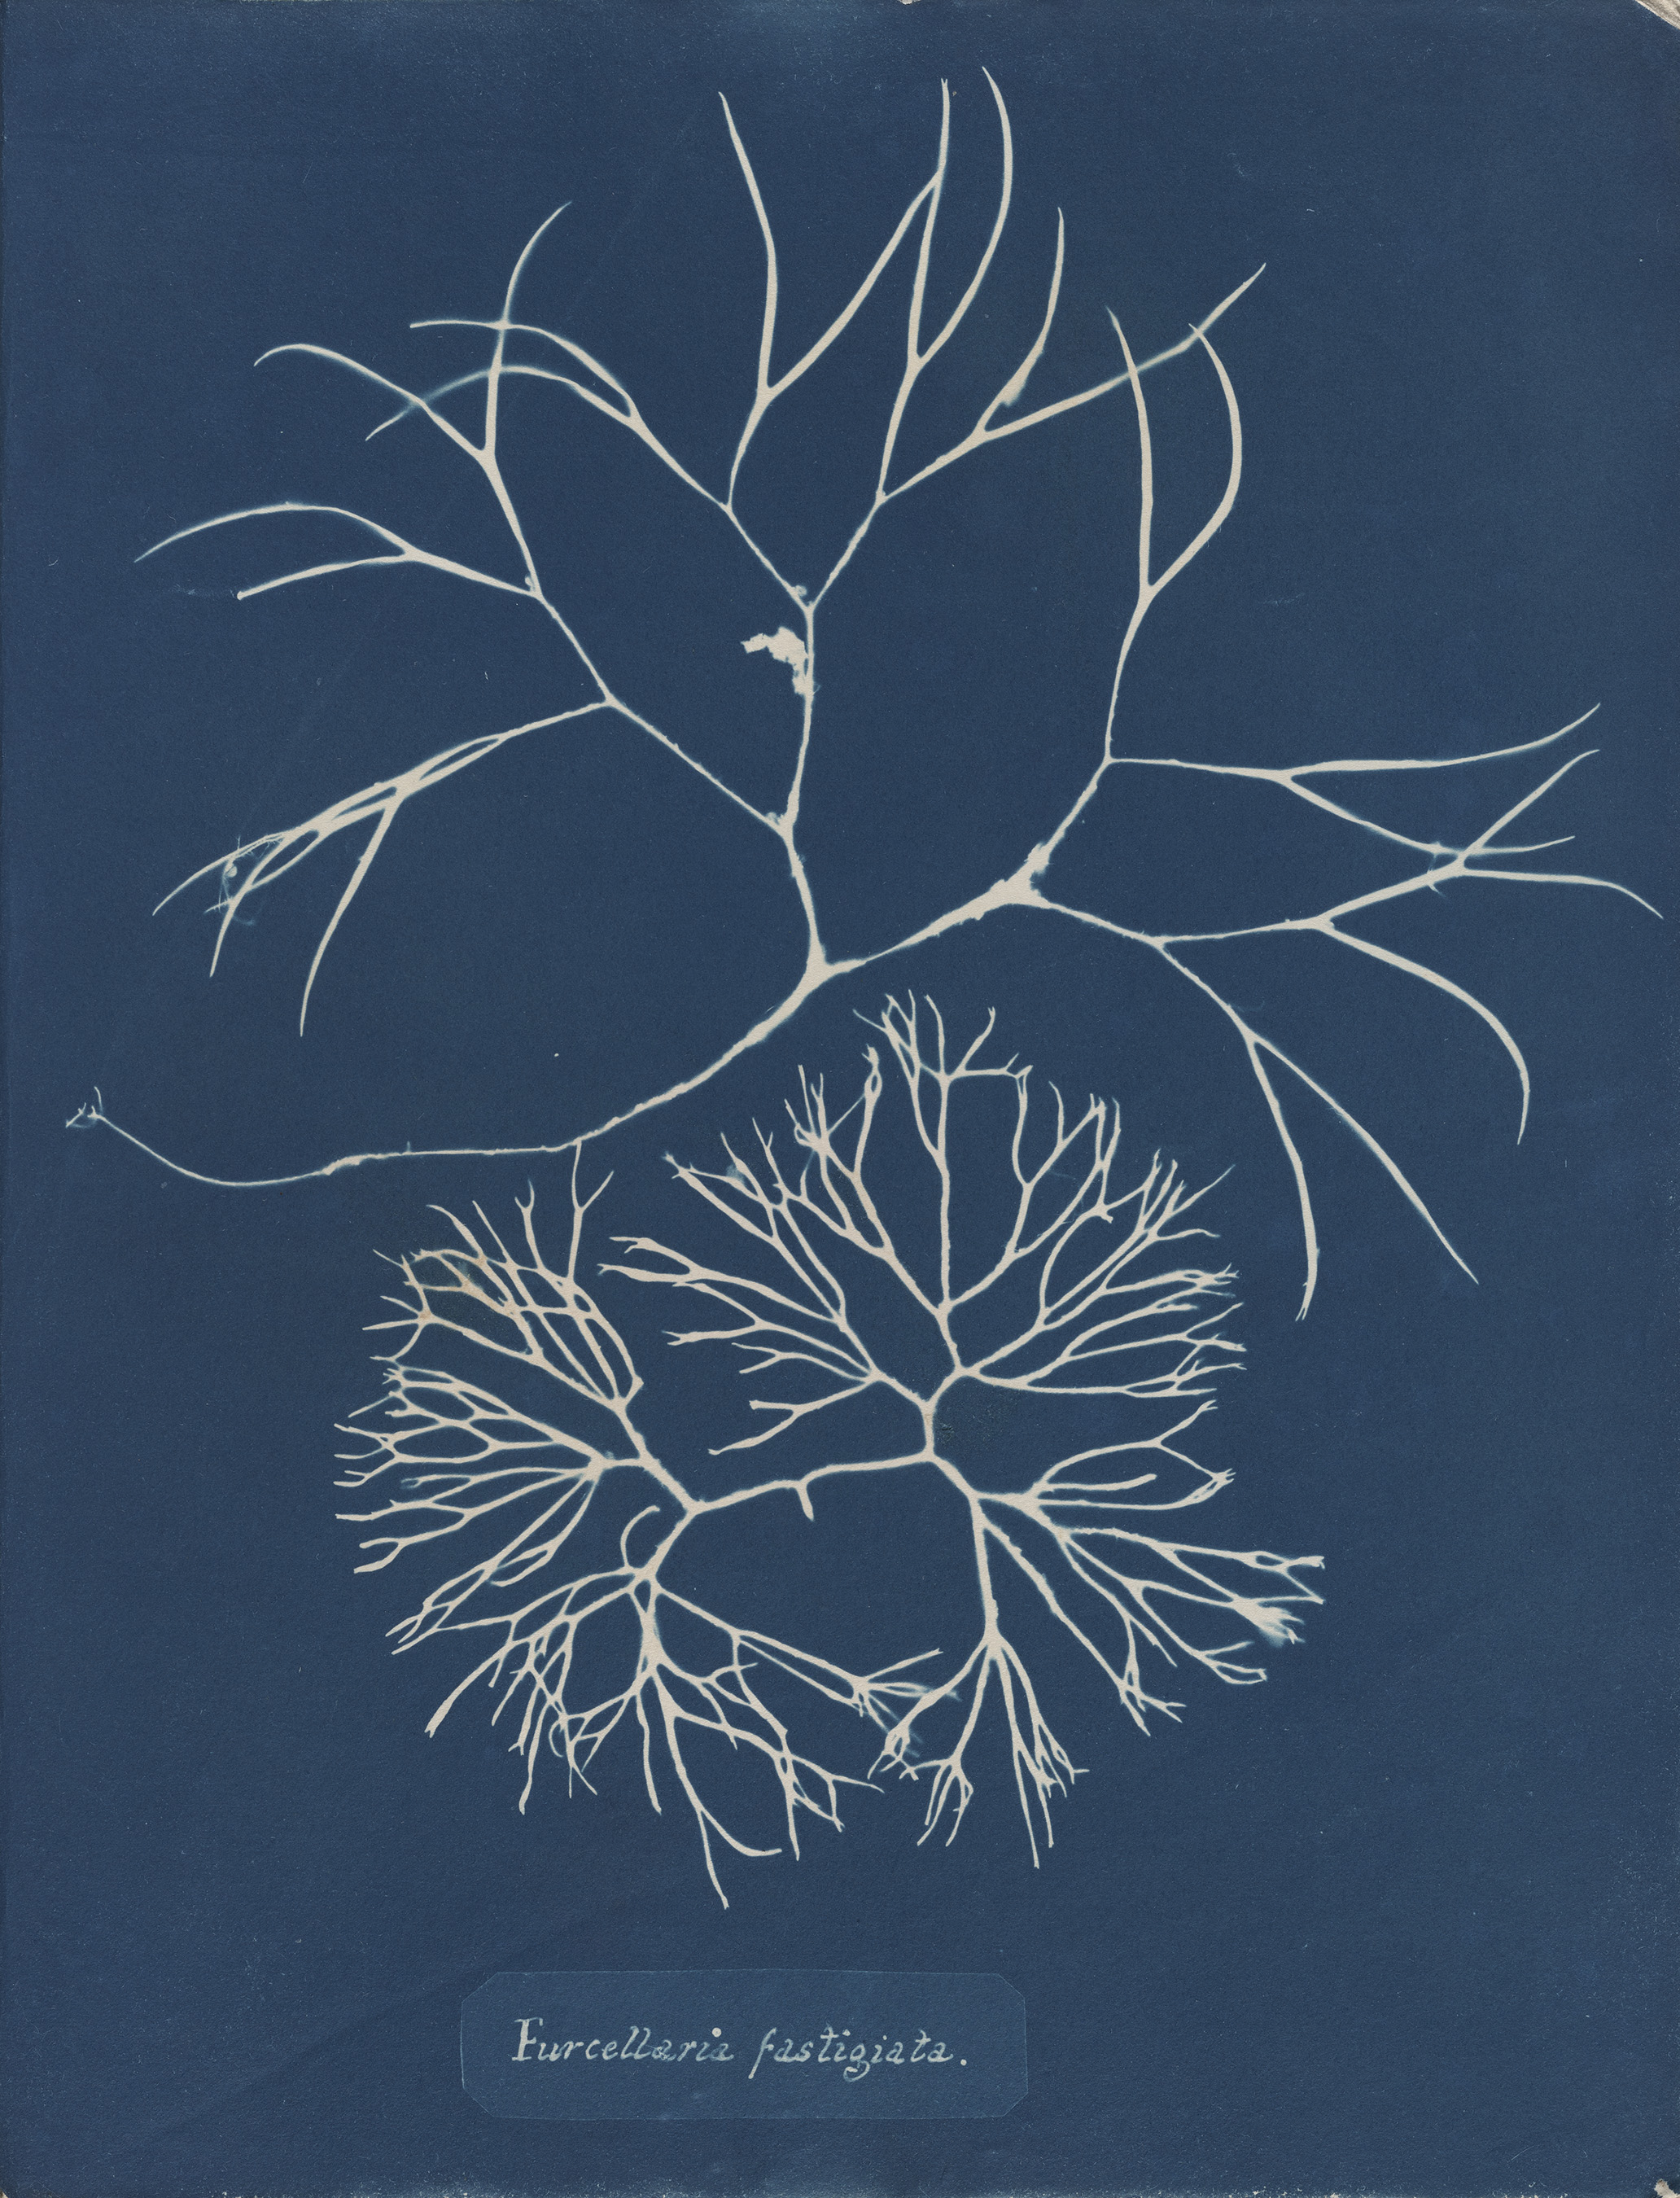 © Anna Atkins (1799–1871), Furcellaria fastigiata, from Part IV, version 2 of Photographs of British Algae_ Cyanotype Impressions, 1846 or later, cyanotype. Spencer Collection, The New York Public Library, Astor, Lenox and Tilden Foundations..jpg